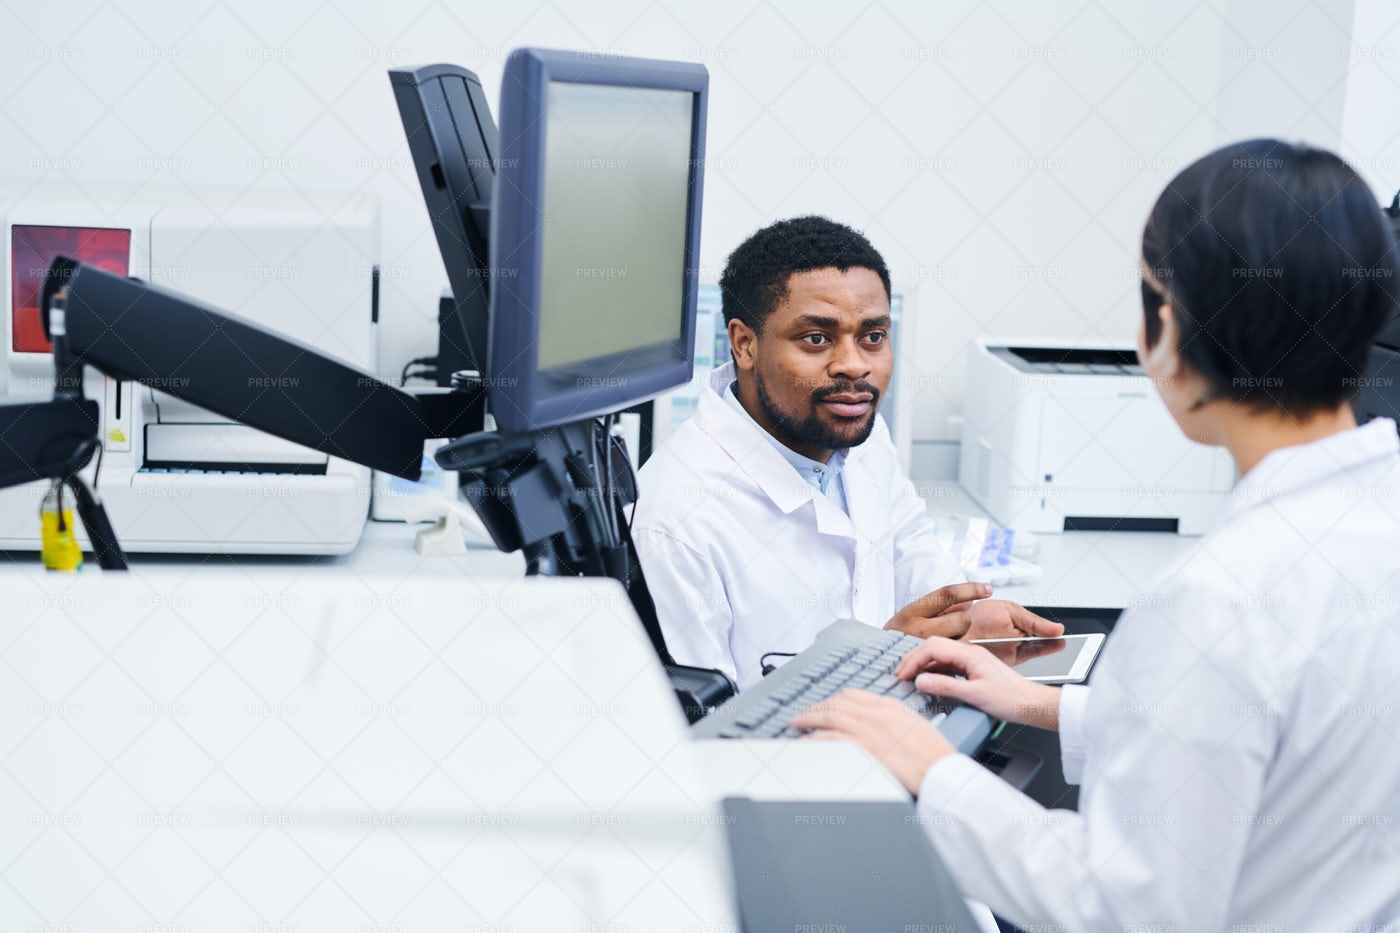 Laboratory Scientists Discussing...: Stock Photos